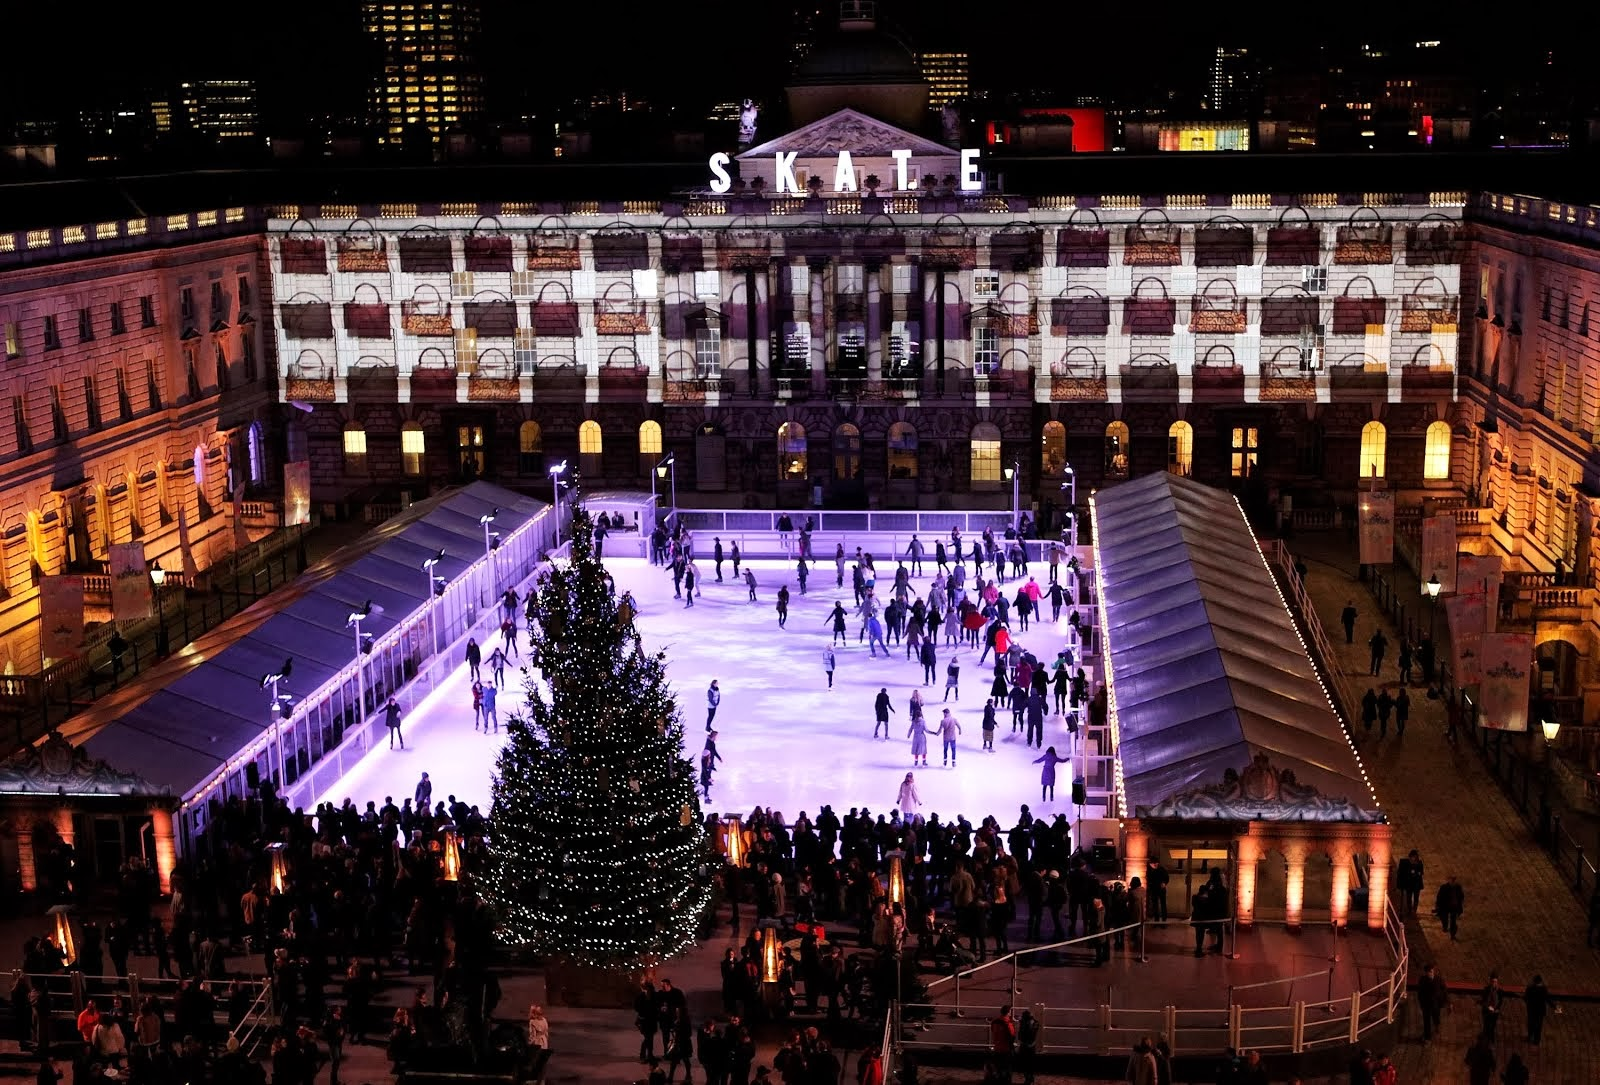 Coach presents Skate at Somerset House 2013